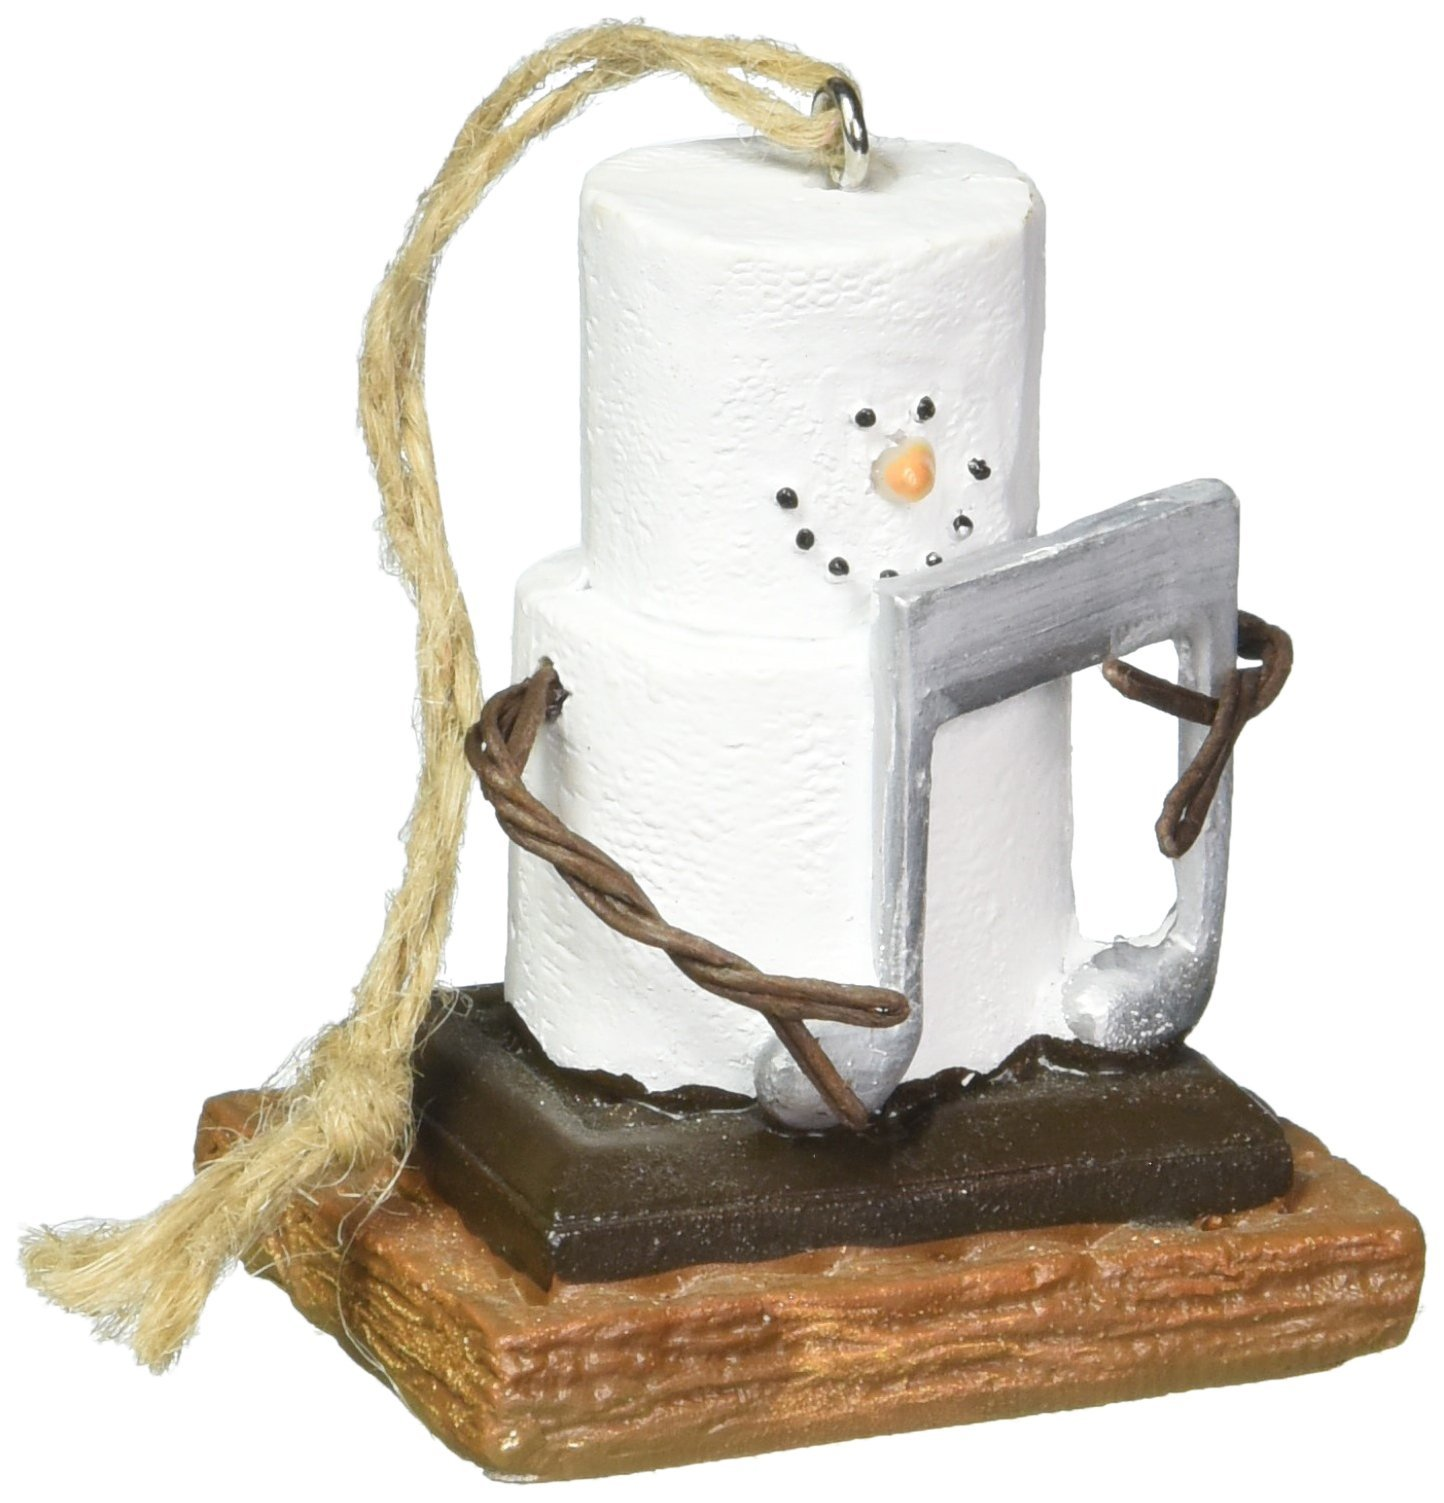 S'Mores Music Lovers Music Note Christmas/ Everyday Ornament by Midwest-CBK